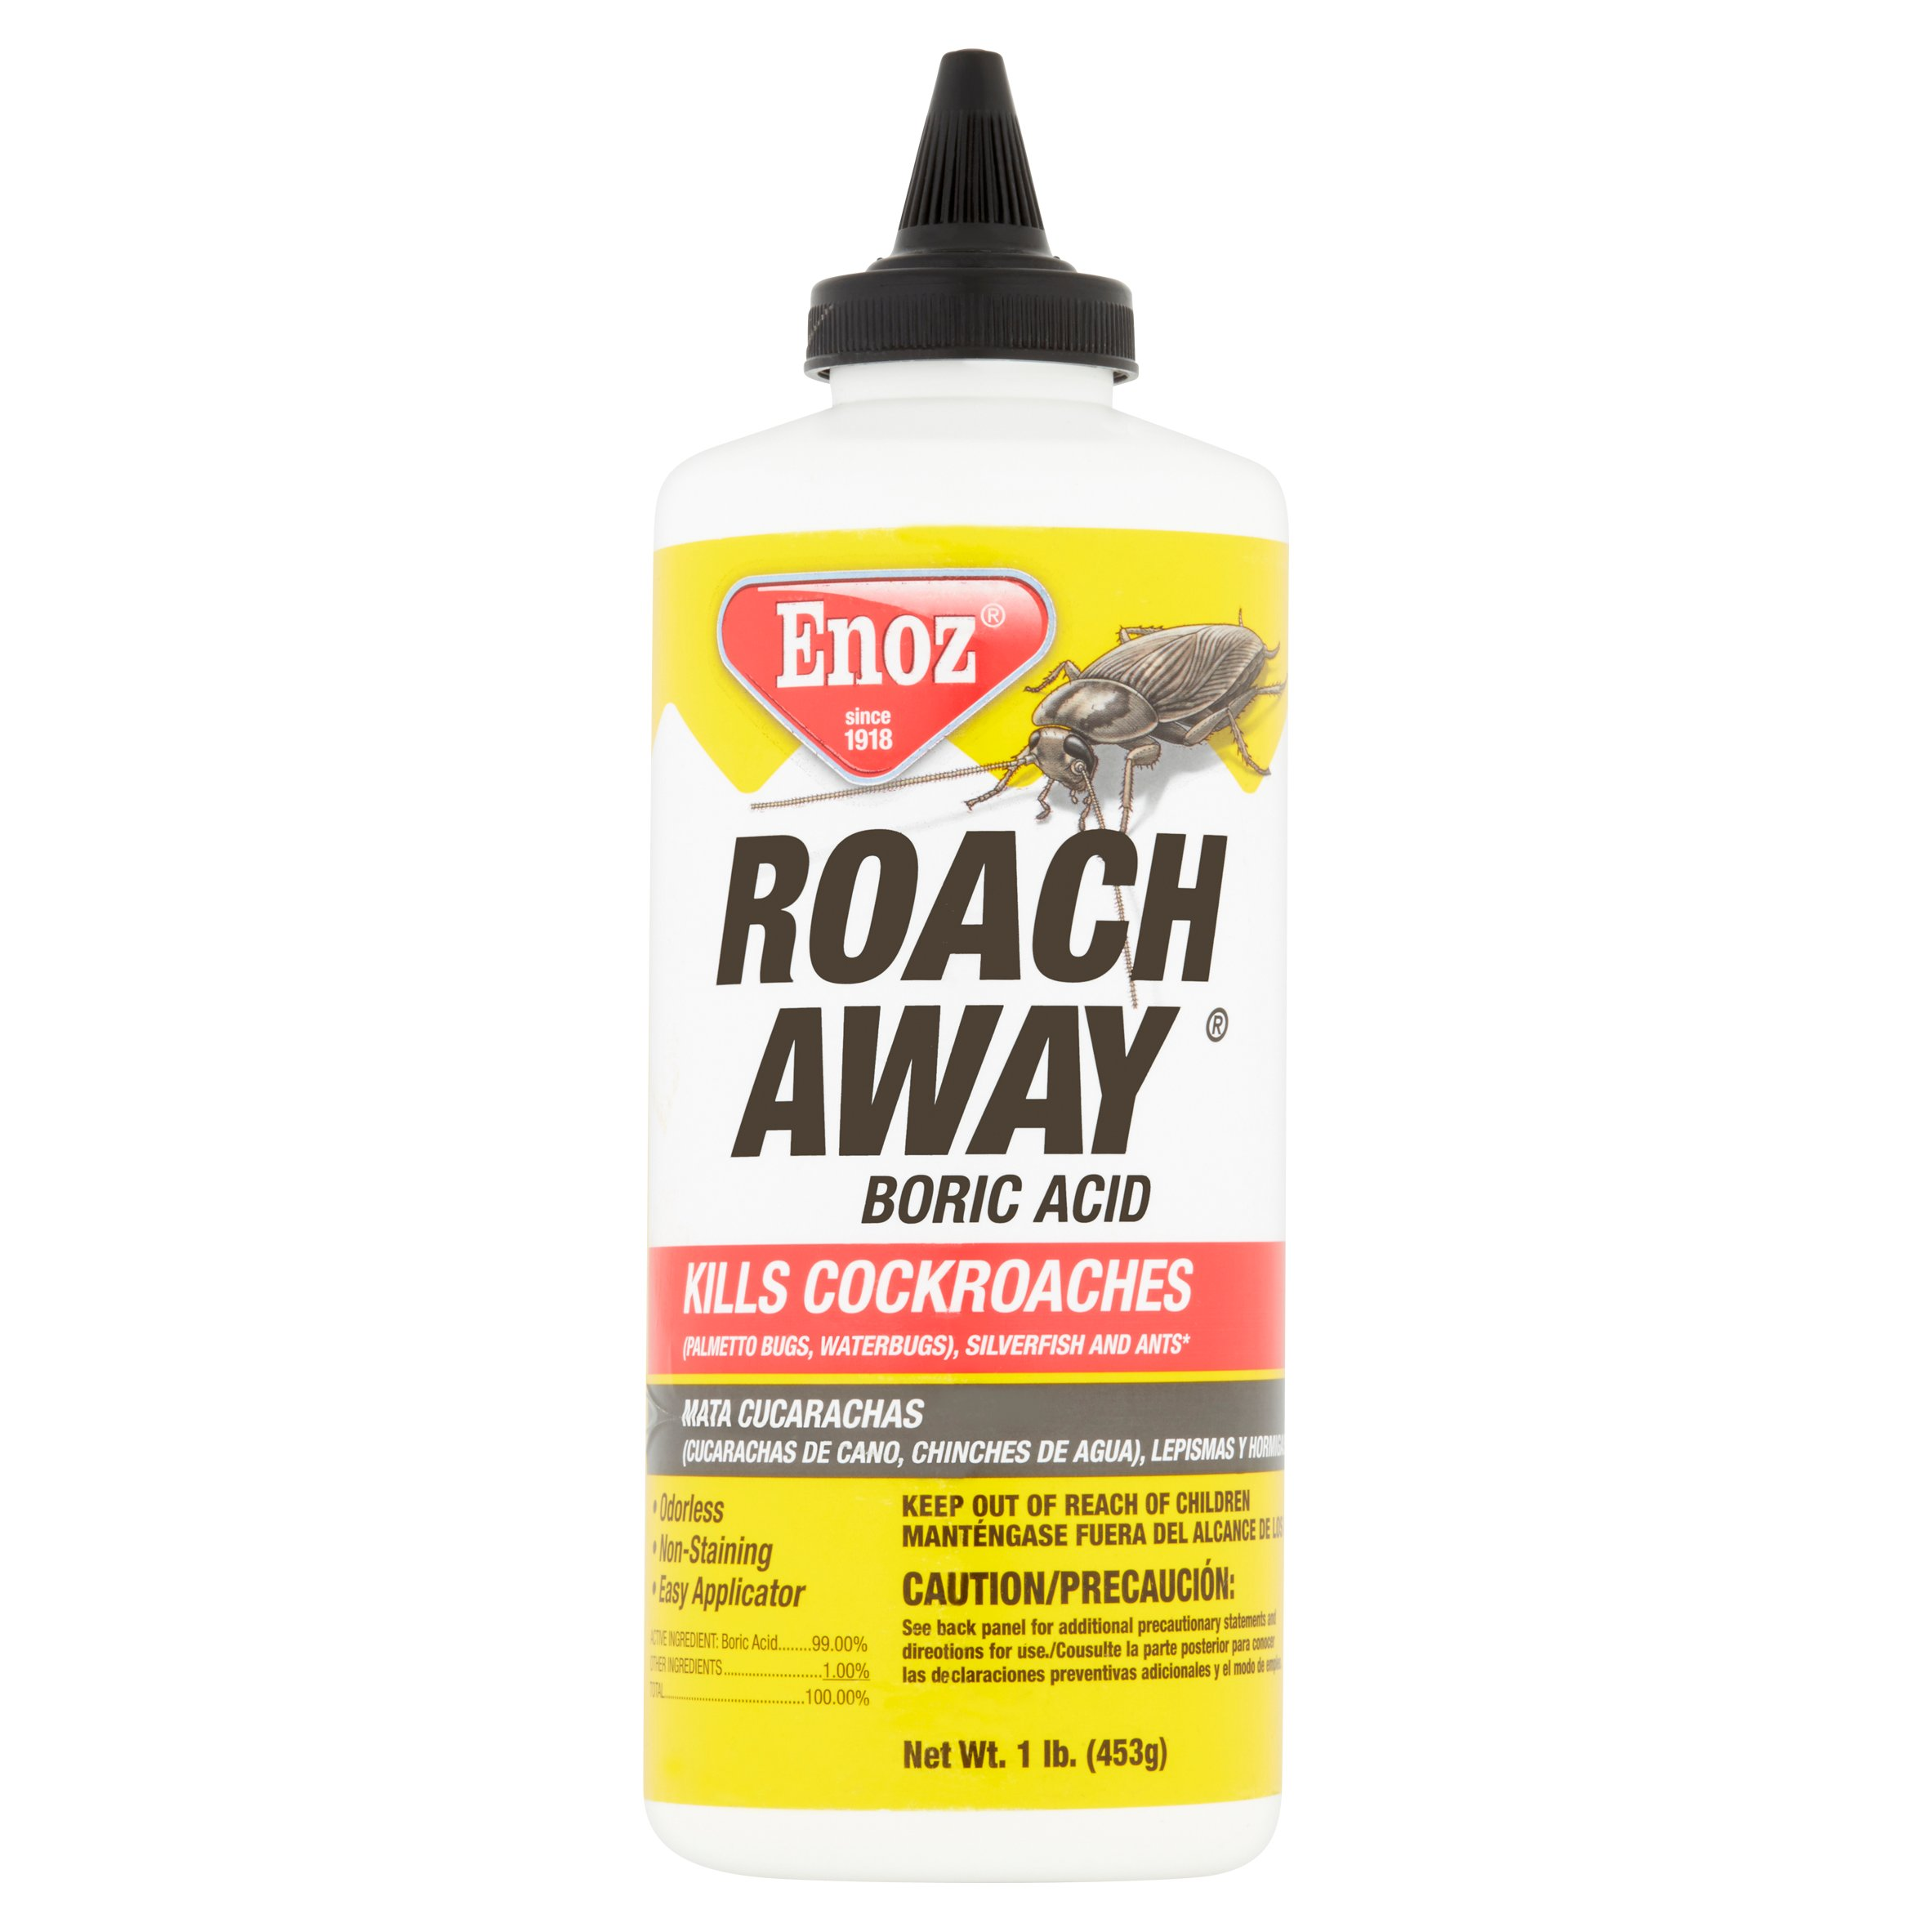 Enoz Roach Away Boric Acid, 1 lb